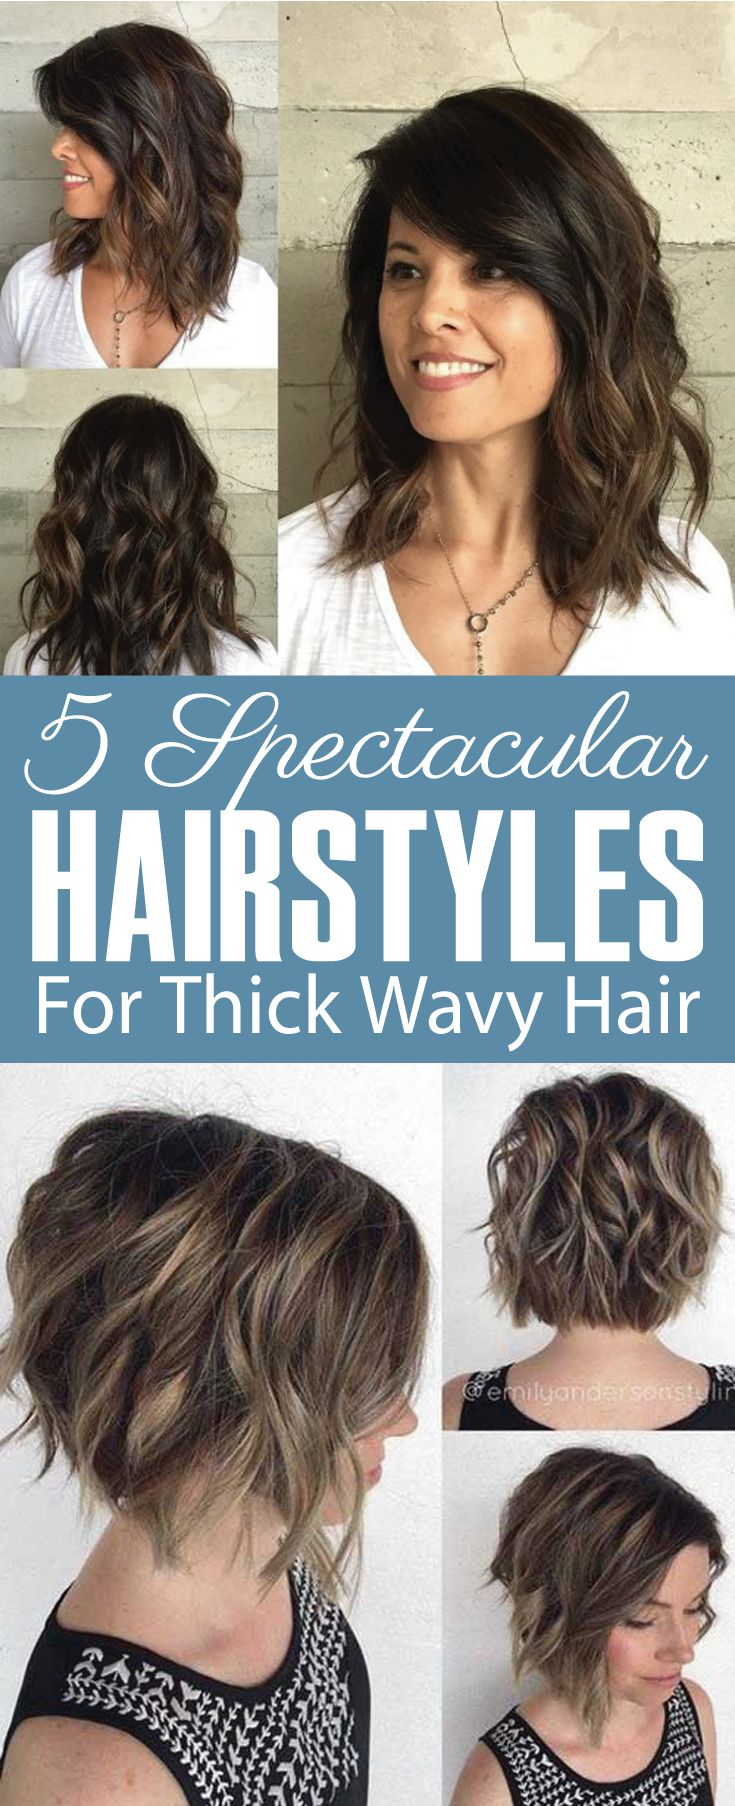 ways to style thick wavy hair best 25 thick hair ideas on 8568